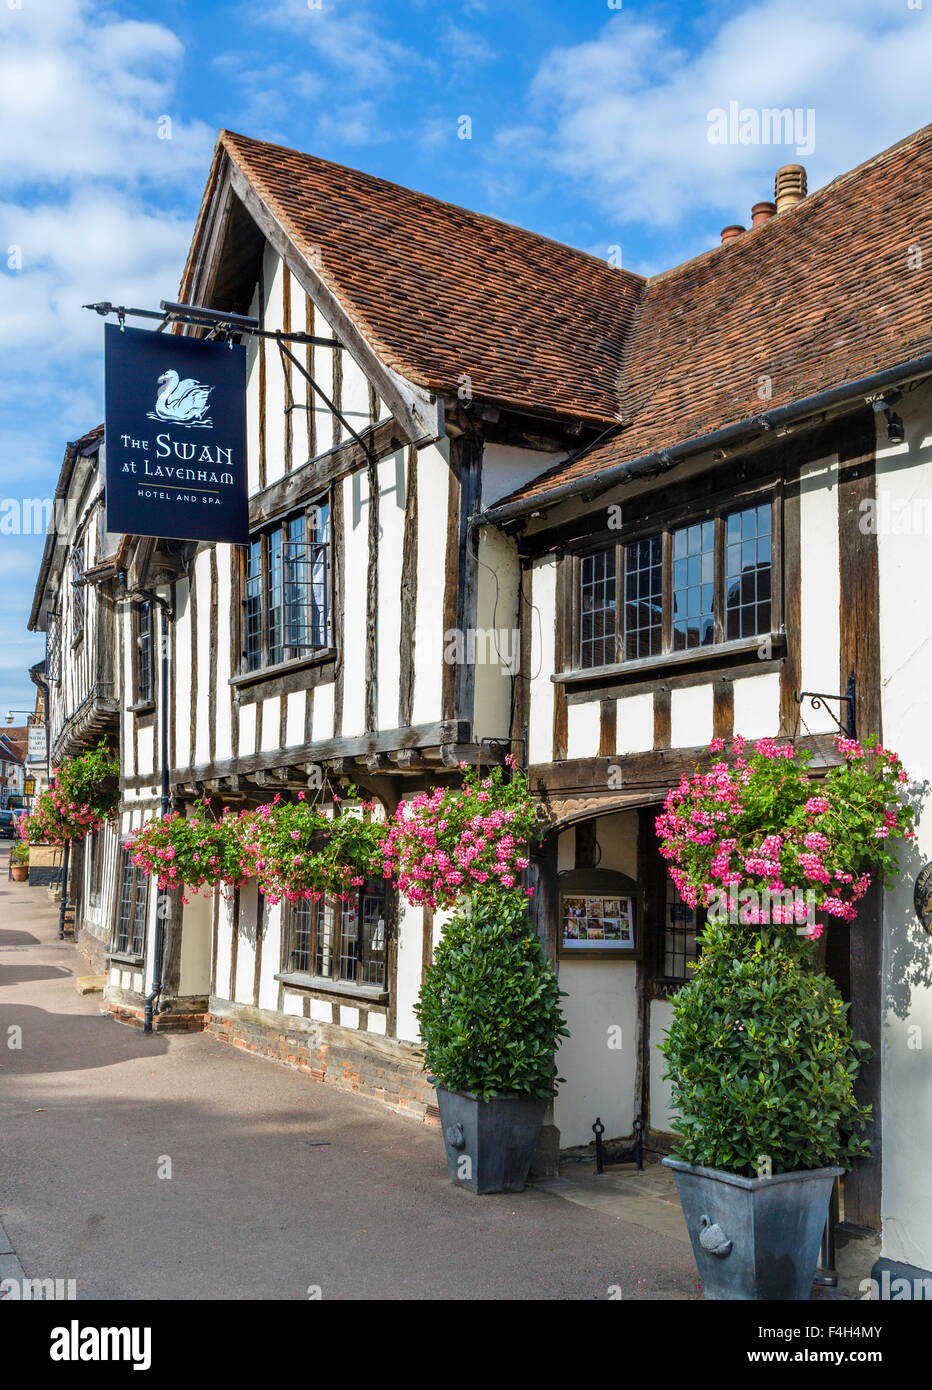 The Swan Hotel and Spa, Lavenham, Suffolk, England, UK - Stock Image